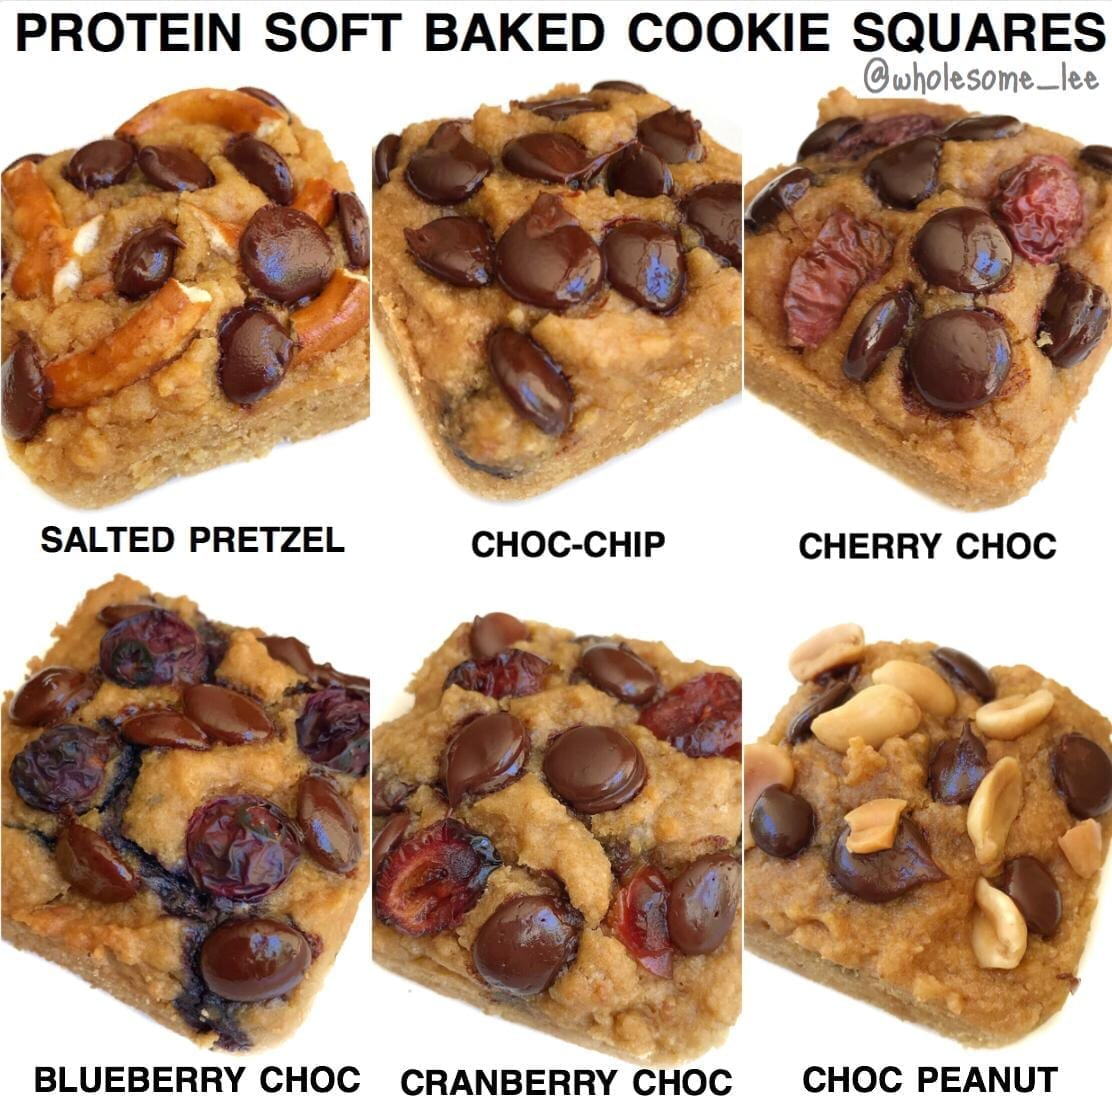 Protein Soft Baked Cookie Squares